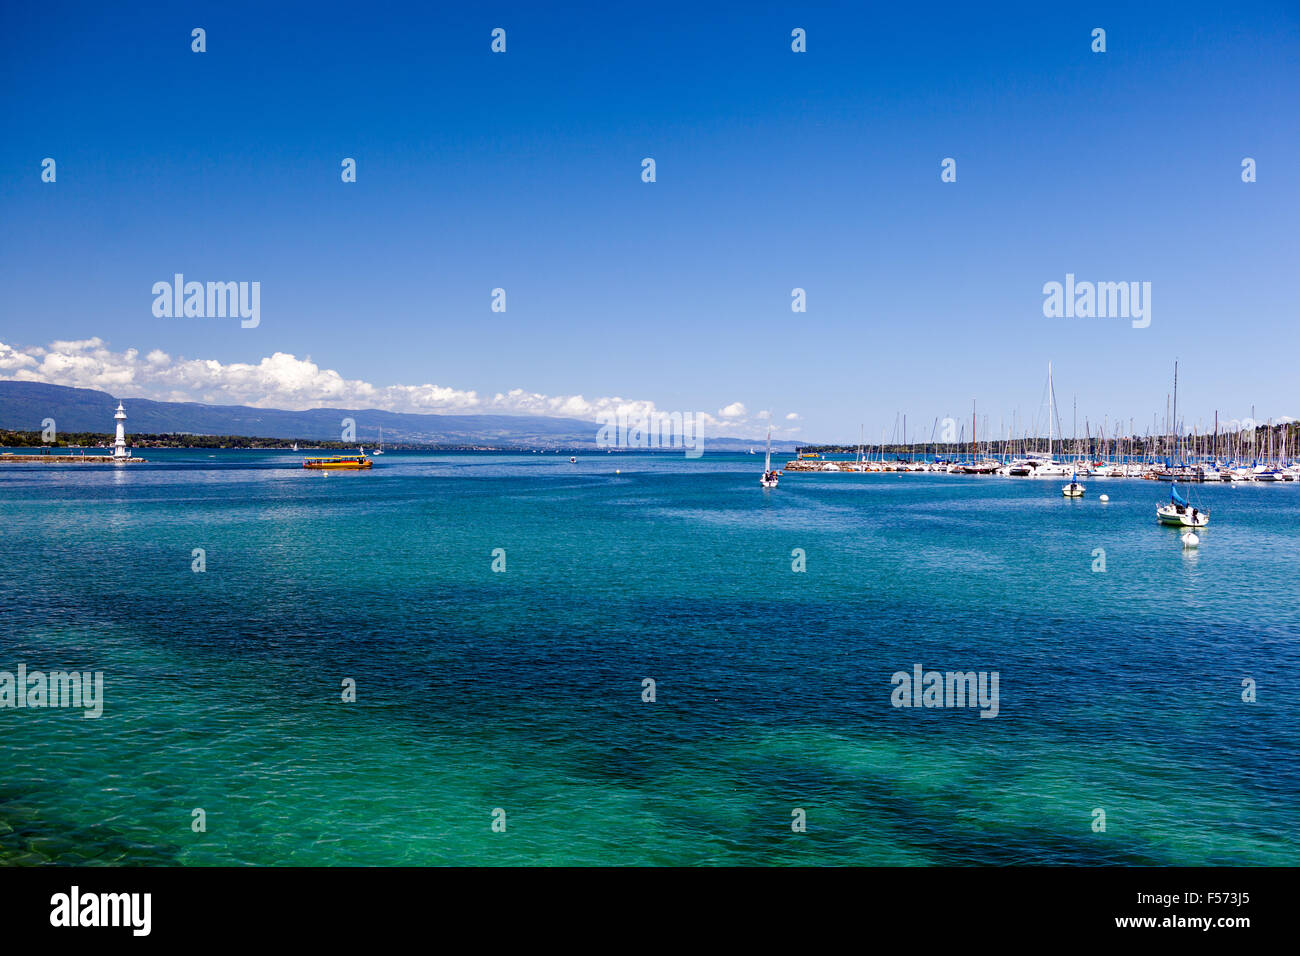 Turquoise-blue water, blue sky, pure mediterranean atmosphere at lake Geneva Lac Léman - Stock Image